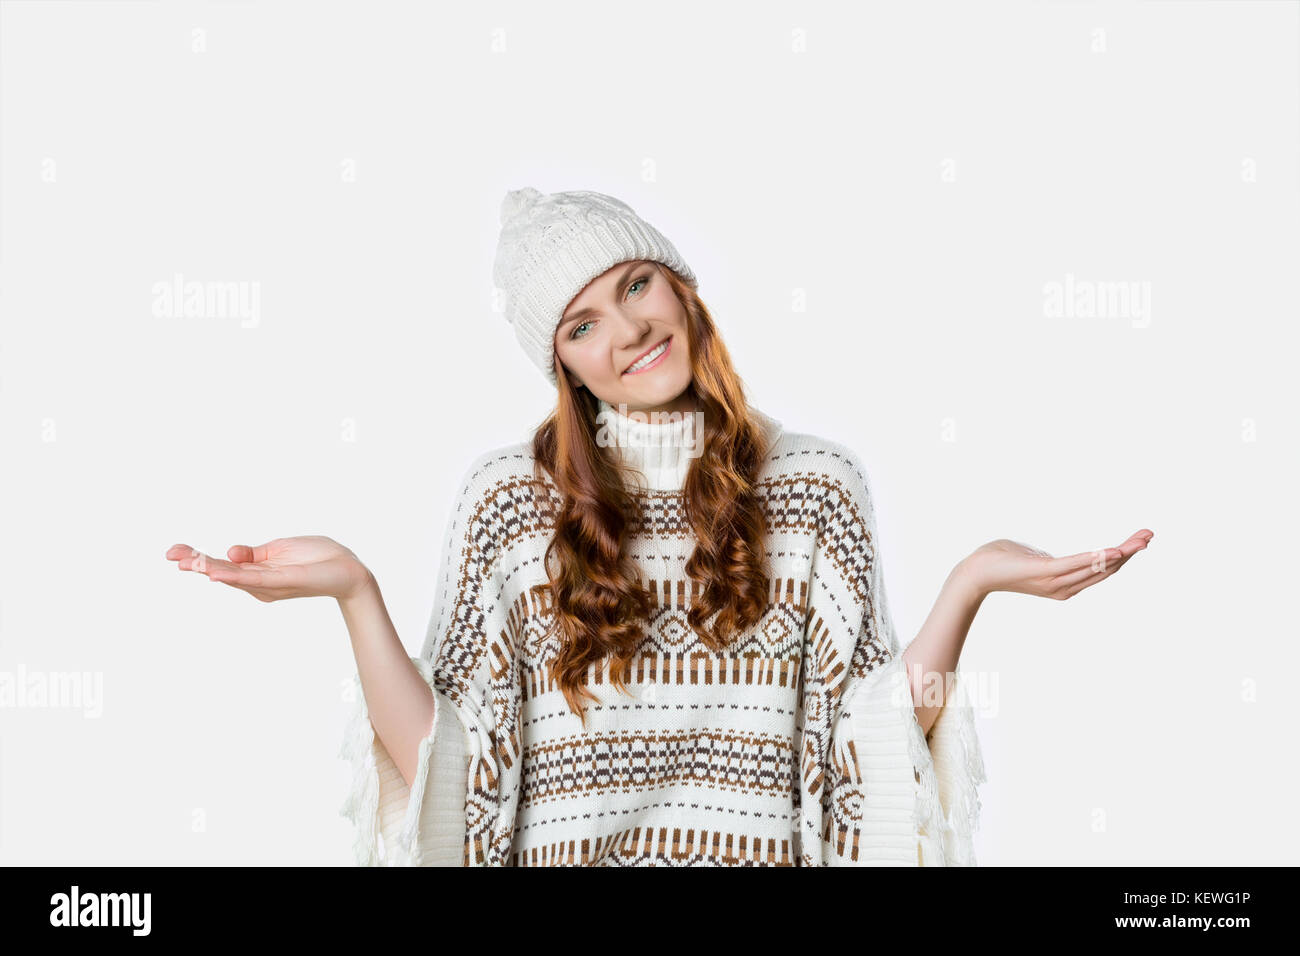 Knitted Jumper Imágenes De Stock & Knitted Jumper Fotos De Stock - Alamy